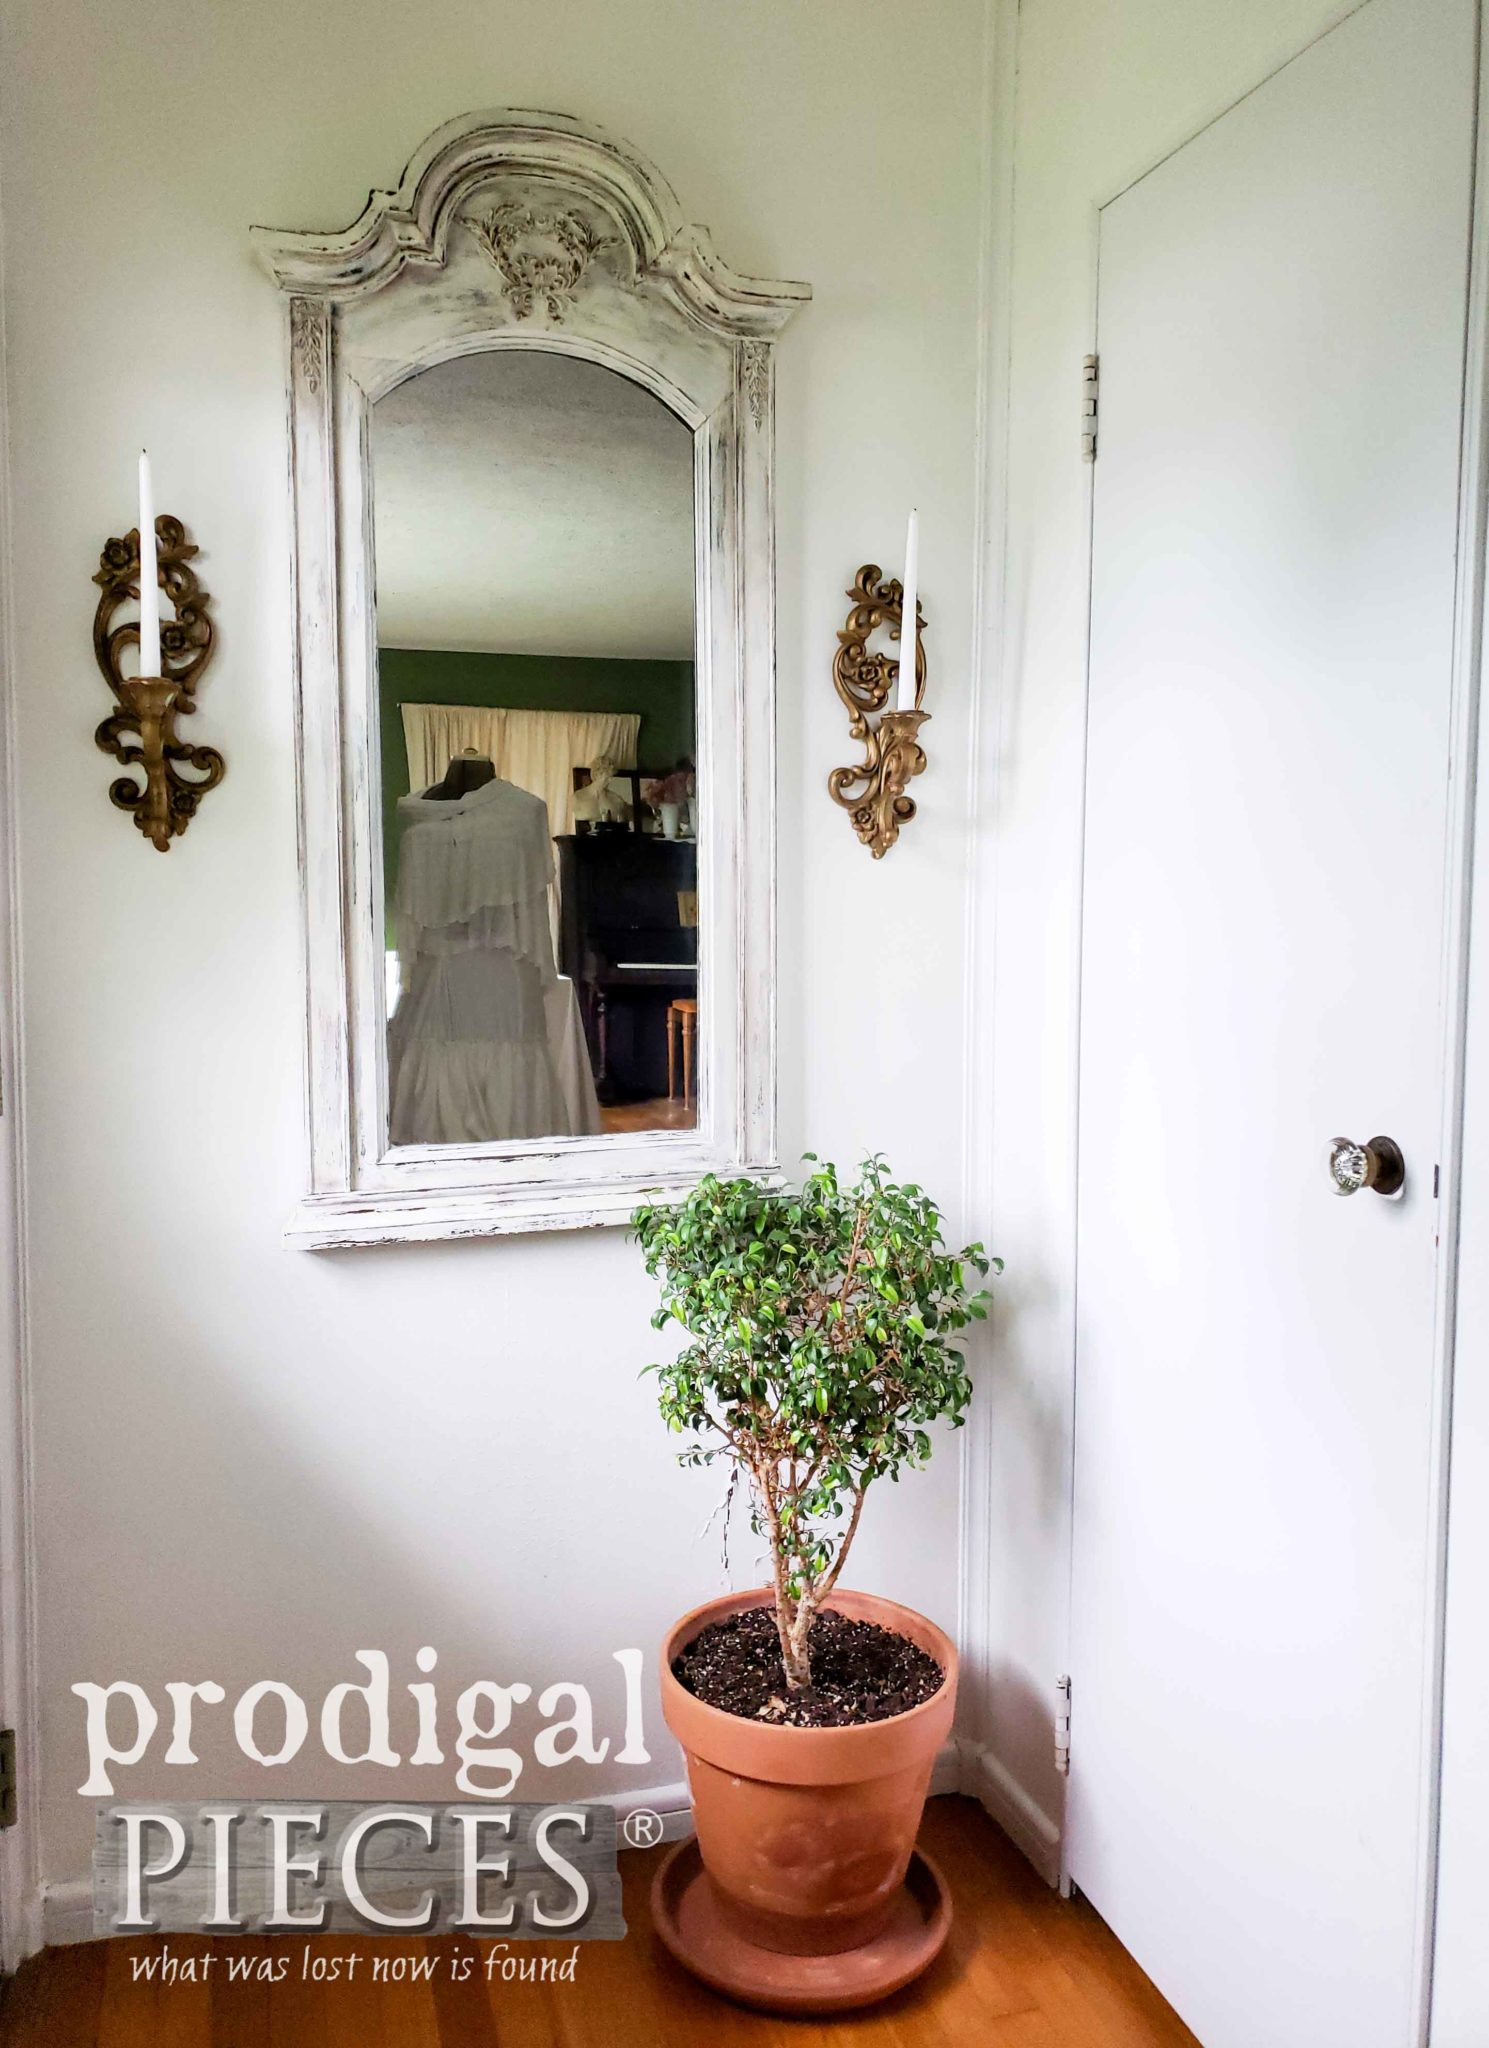 Upcycled Entry Mirror Adds Interest, Light and Depth to a Room | Prodigal Pieces | prodigalpieces.com